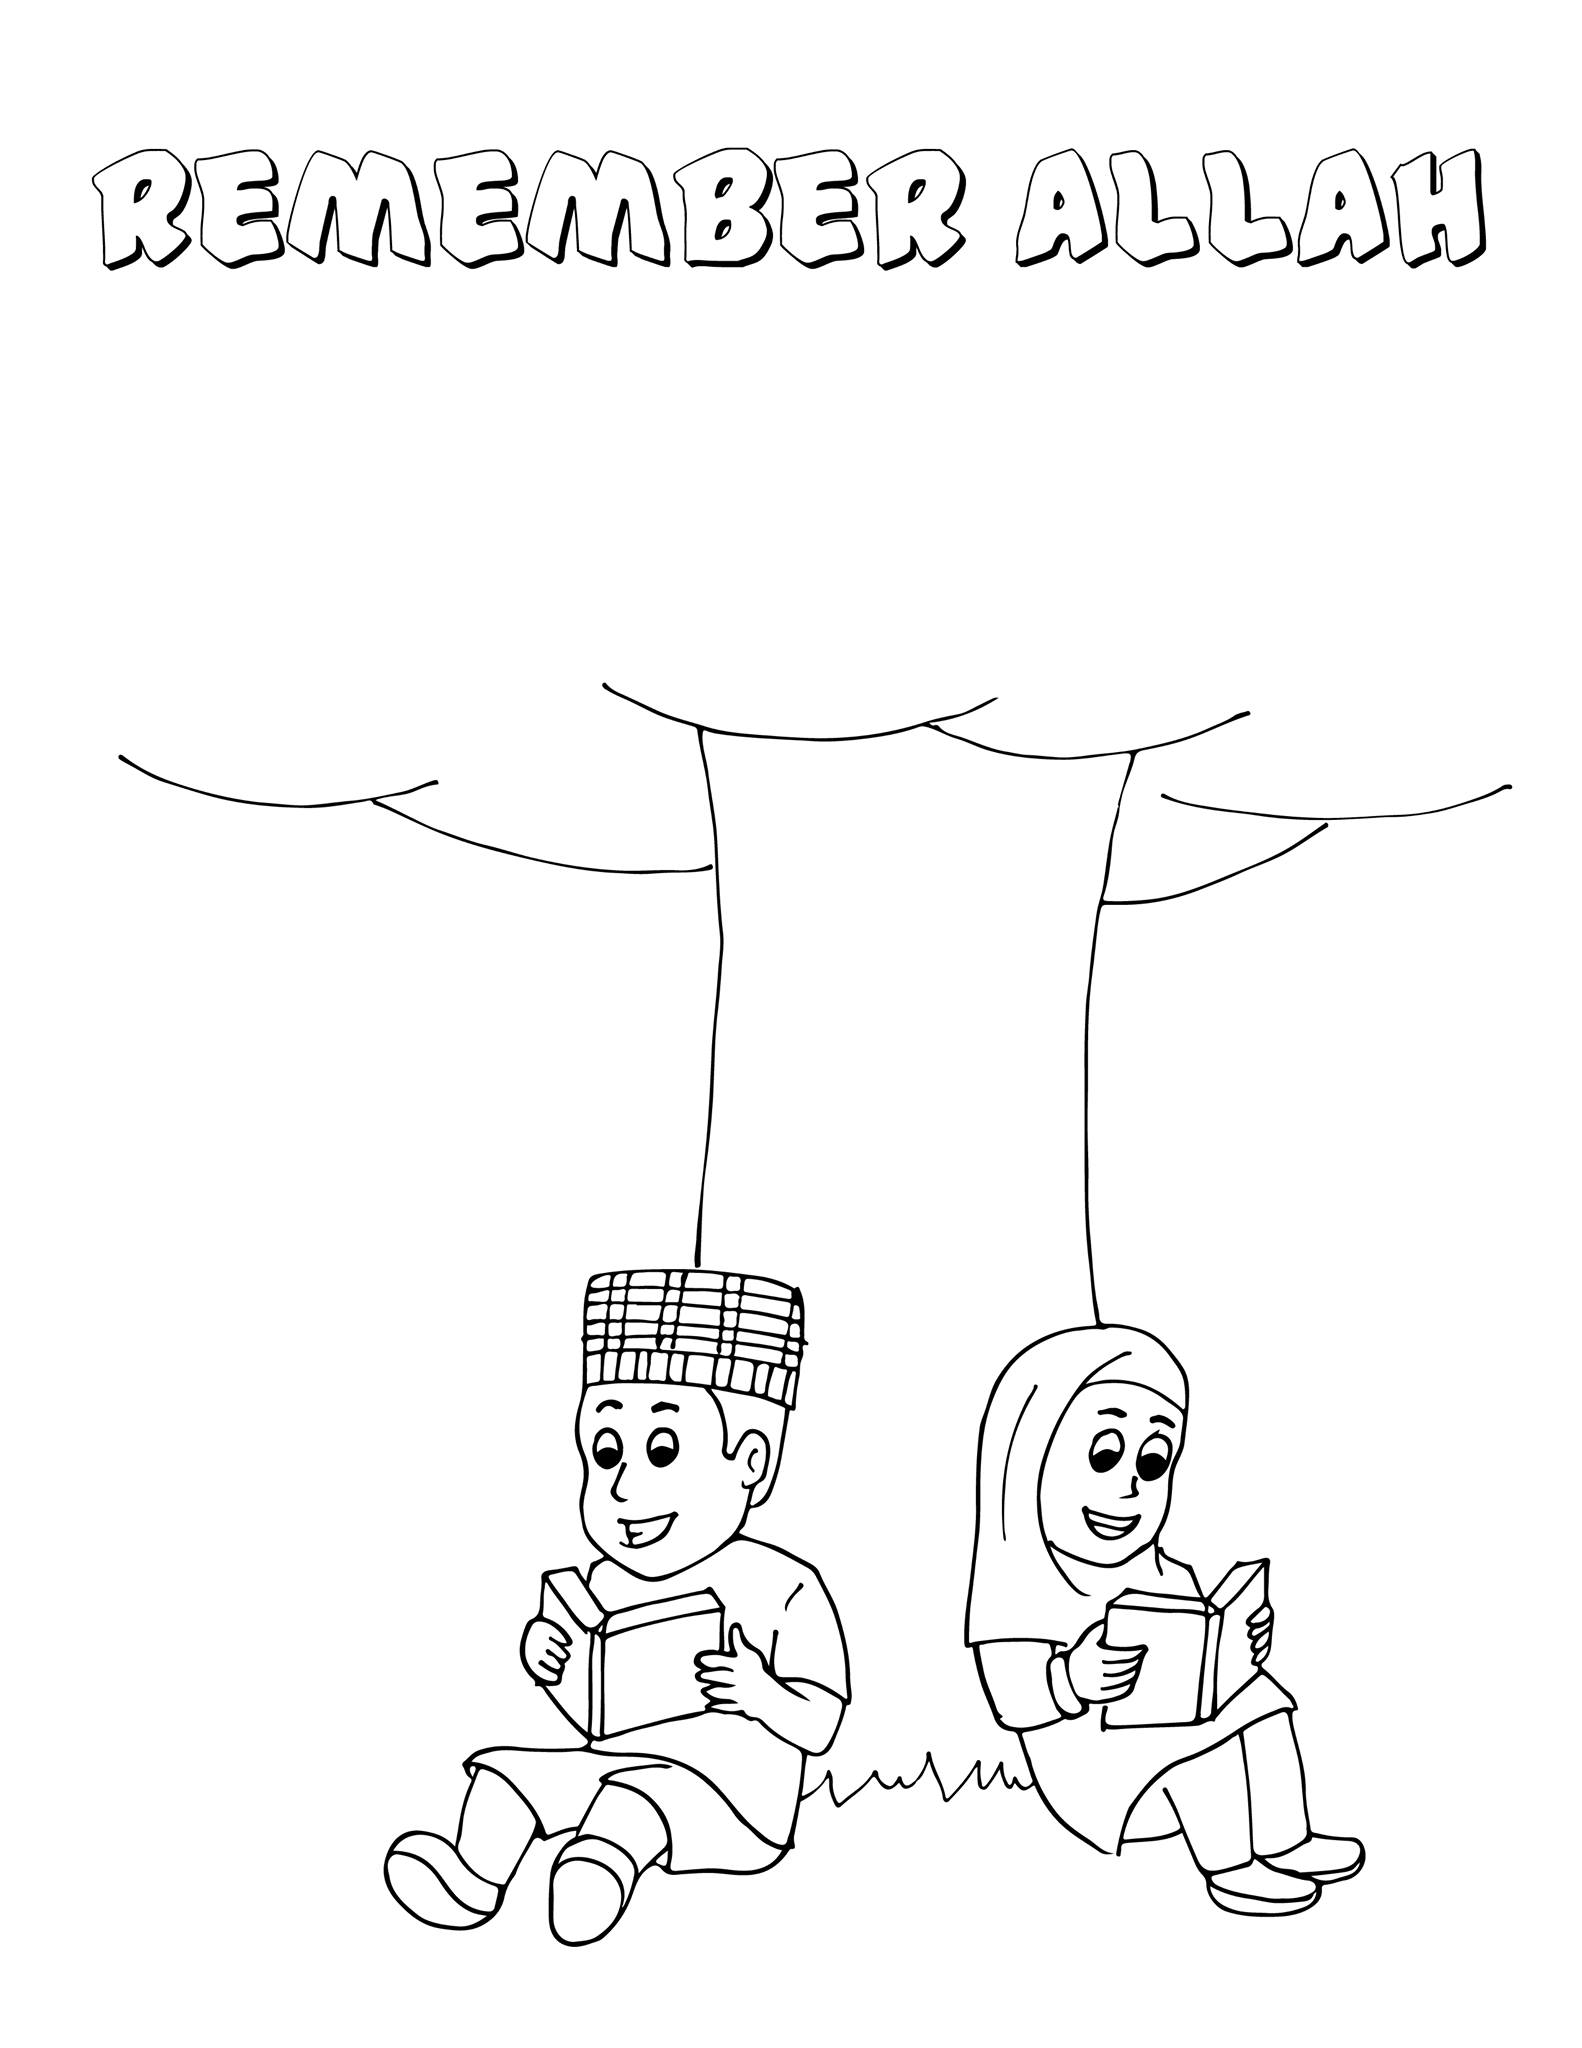 Quran Coloring Pages At Getdrawings